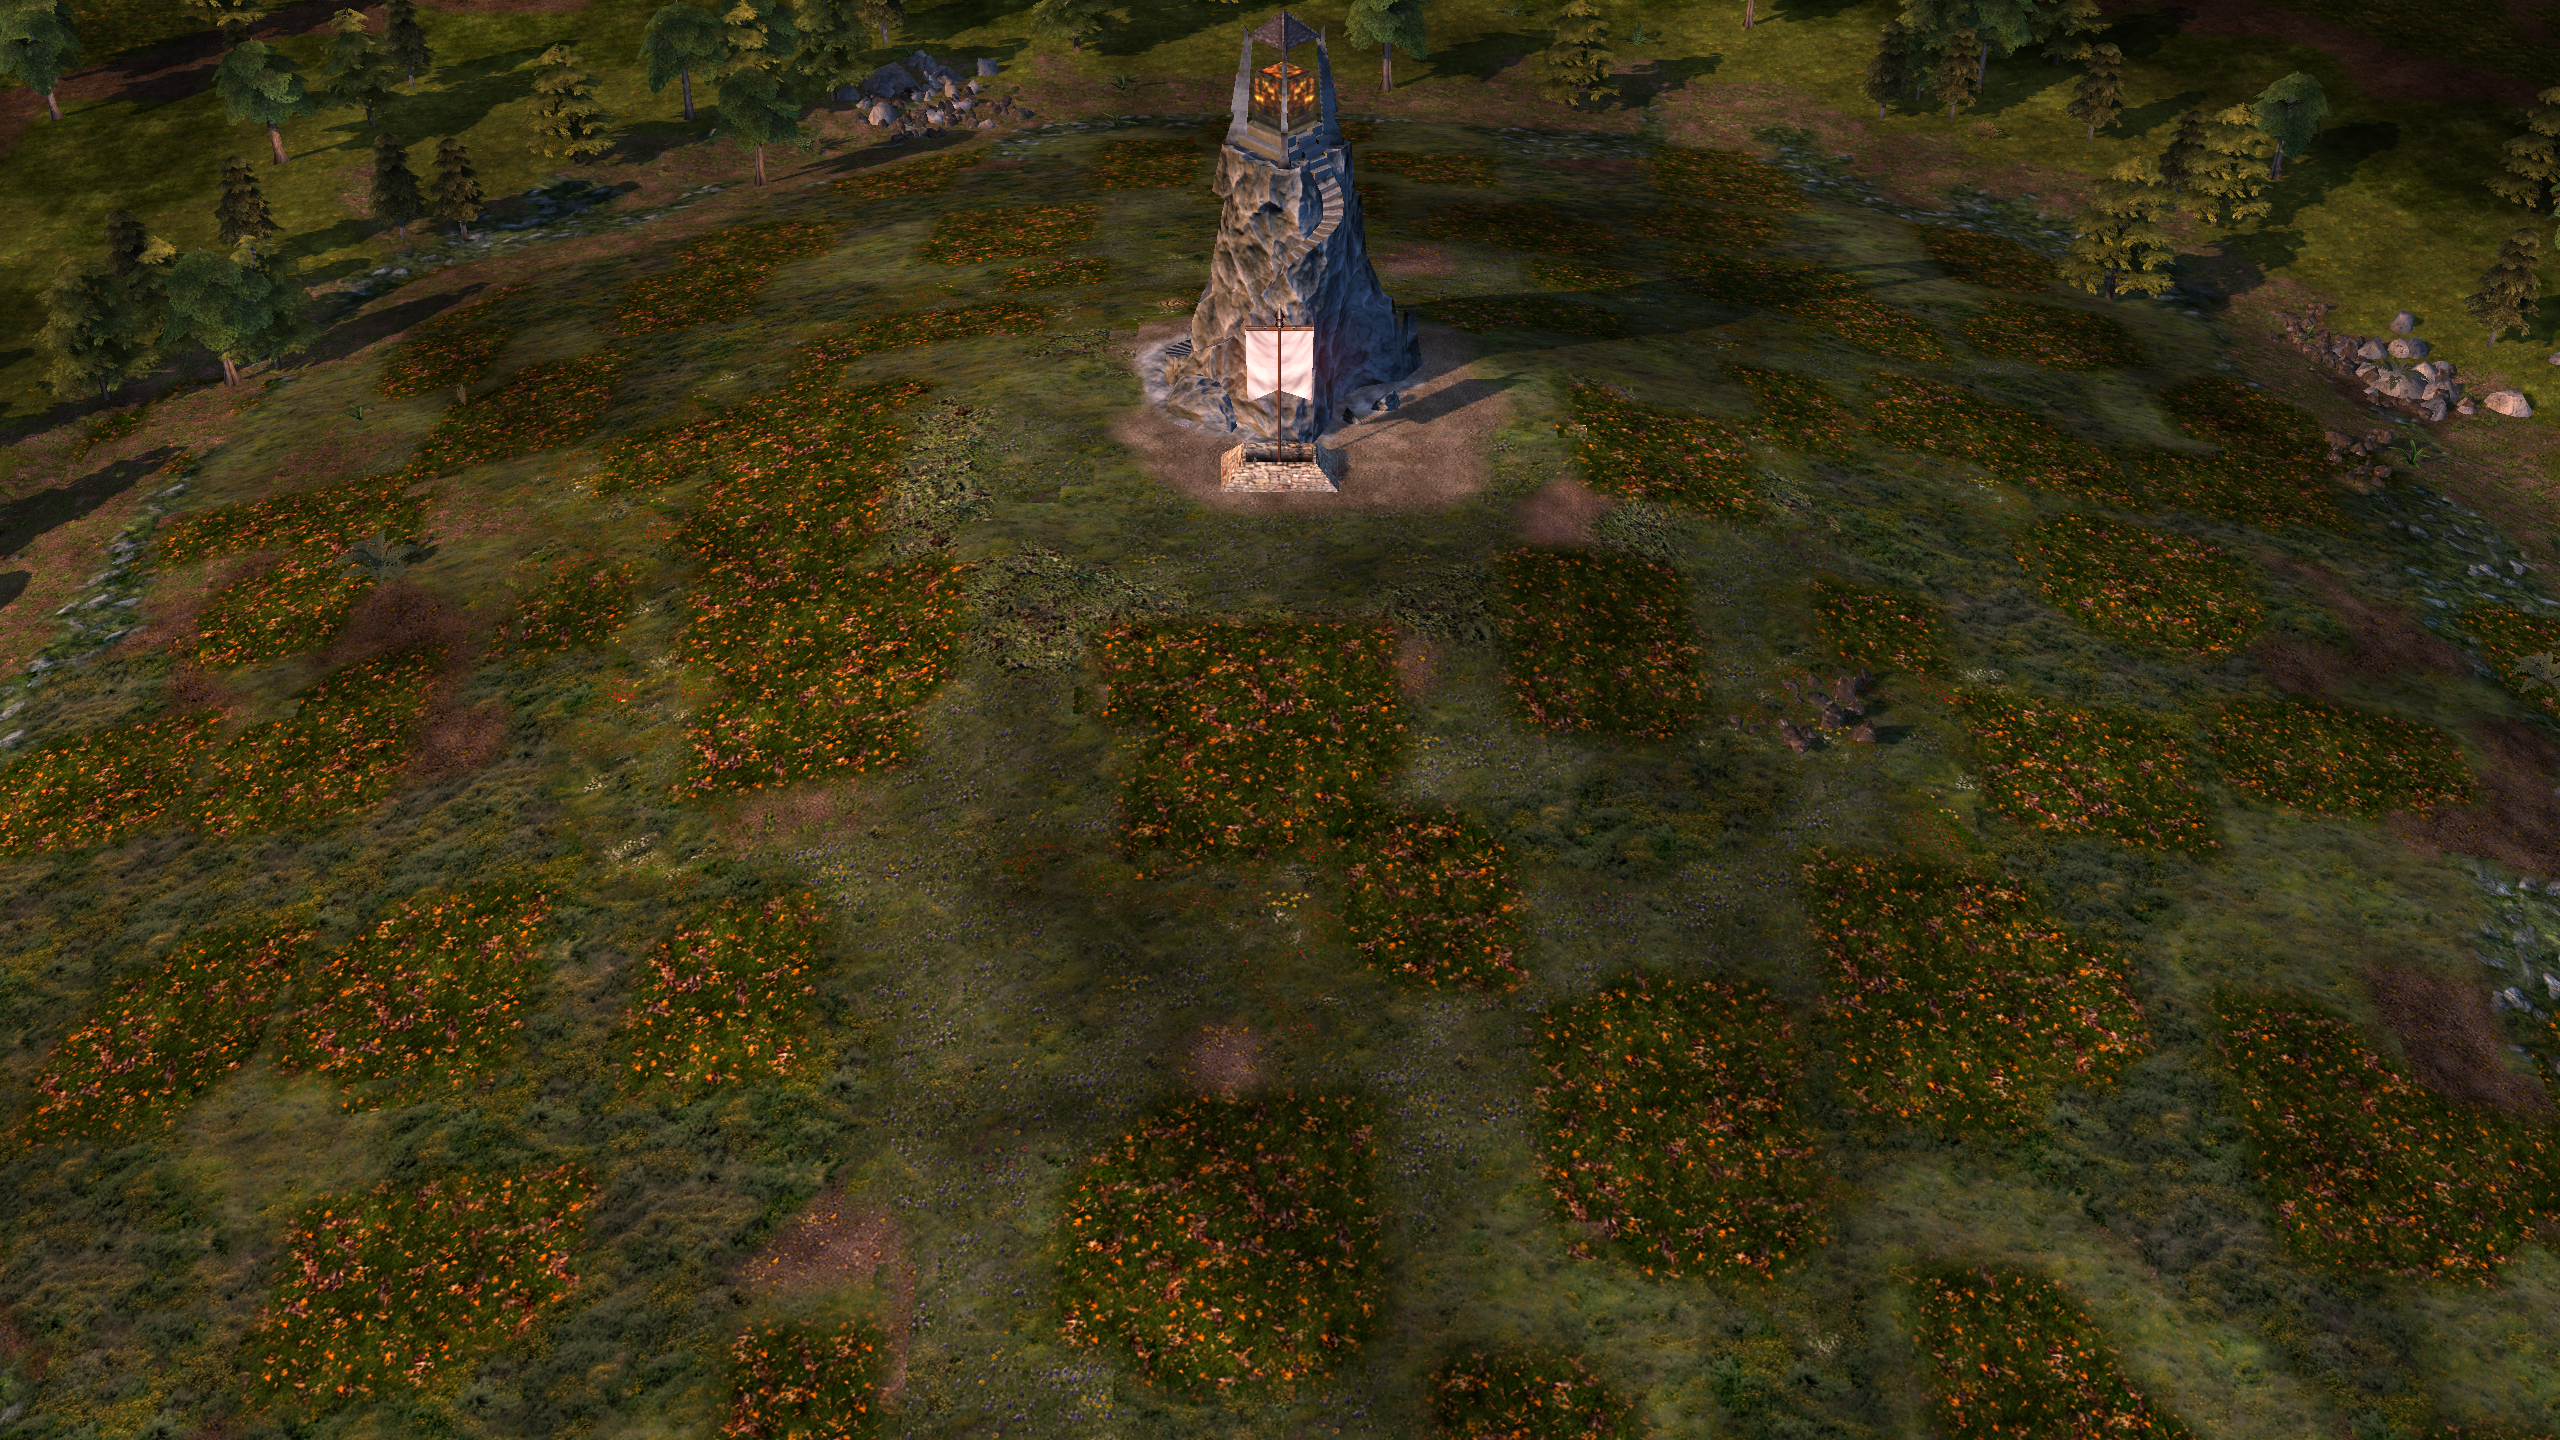 Battle for middle earth ii patch 109 is now live battle for ipb image sciox Gallery